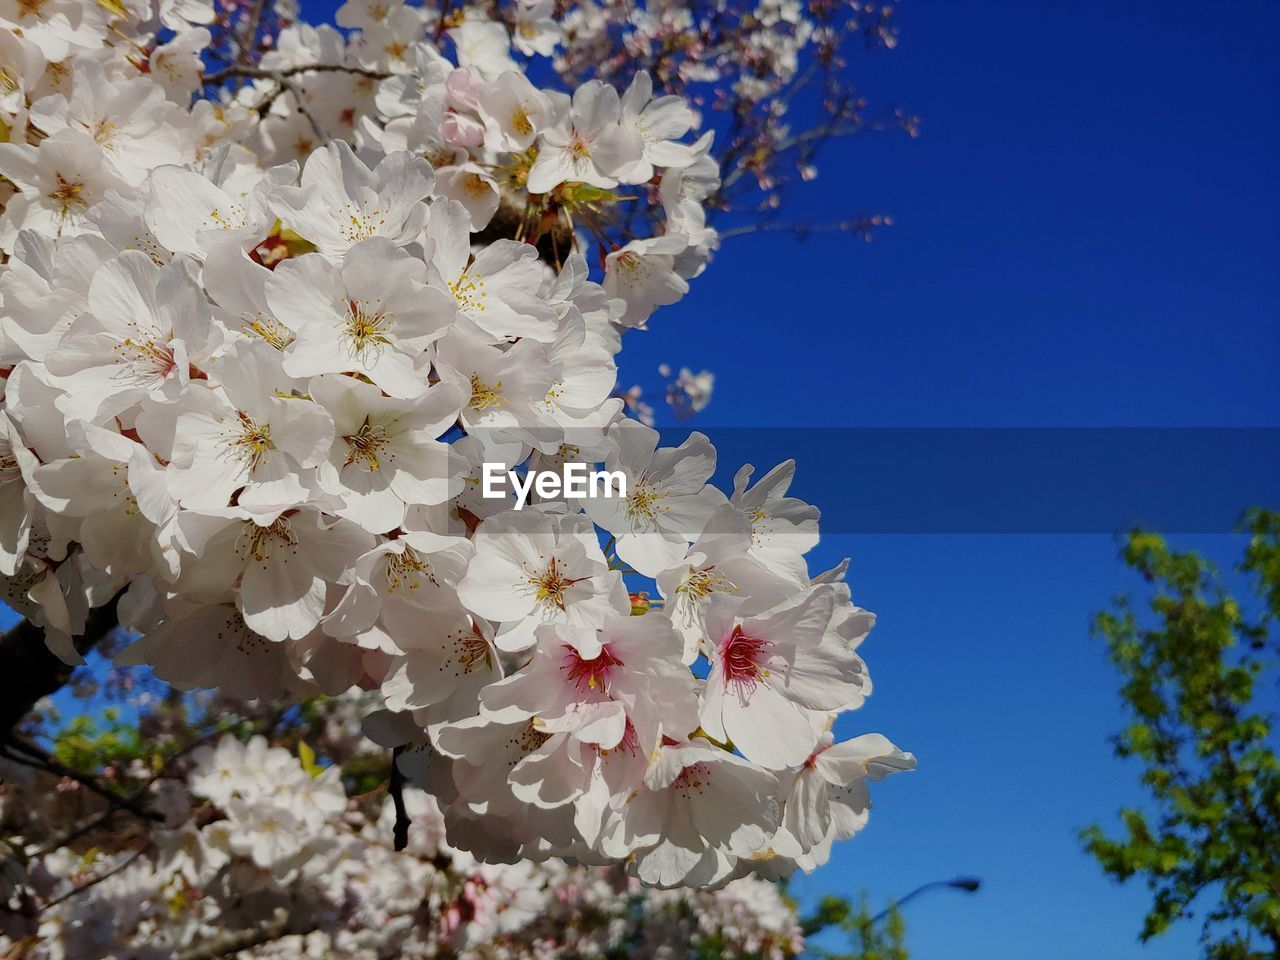 flower, plant, flowering plant, fragility, vulnerability, beauty in nature, growth, sky, freshness, blossom, tree, nature, springtime, white color, close-up, no people, day, cherry blossom, branch, petal, outdoors, cherry tree, bright, flower head, spring, bunch of flowers